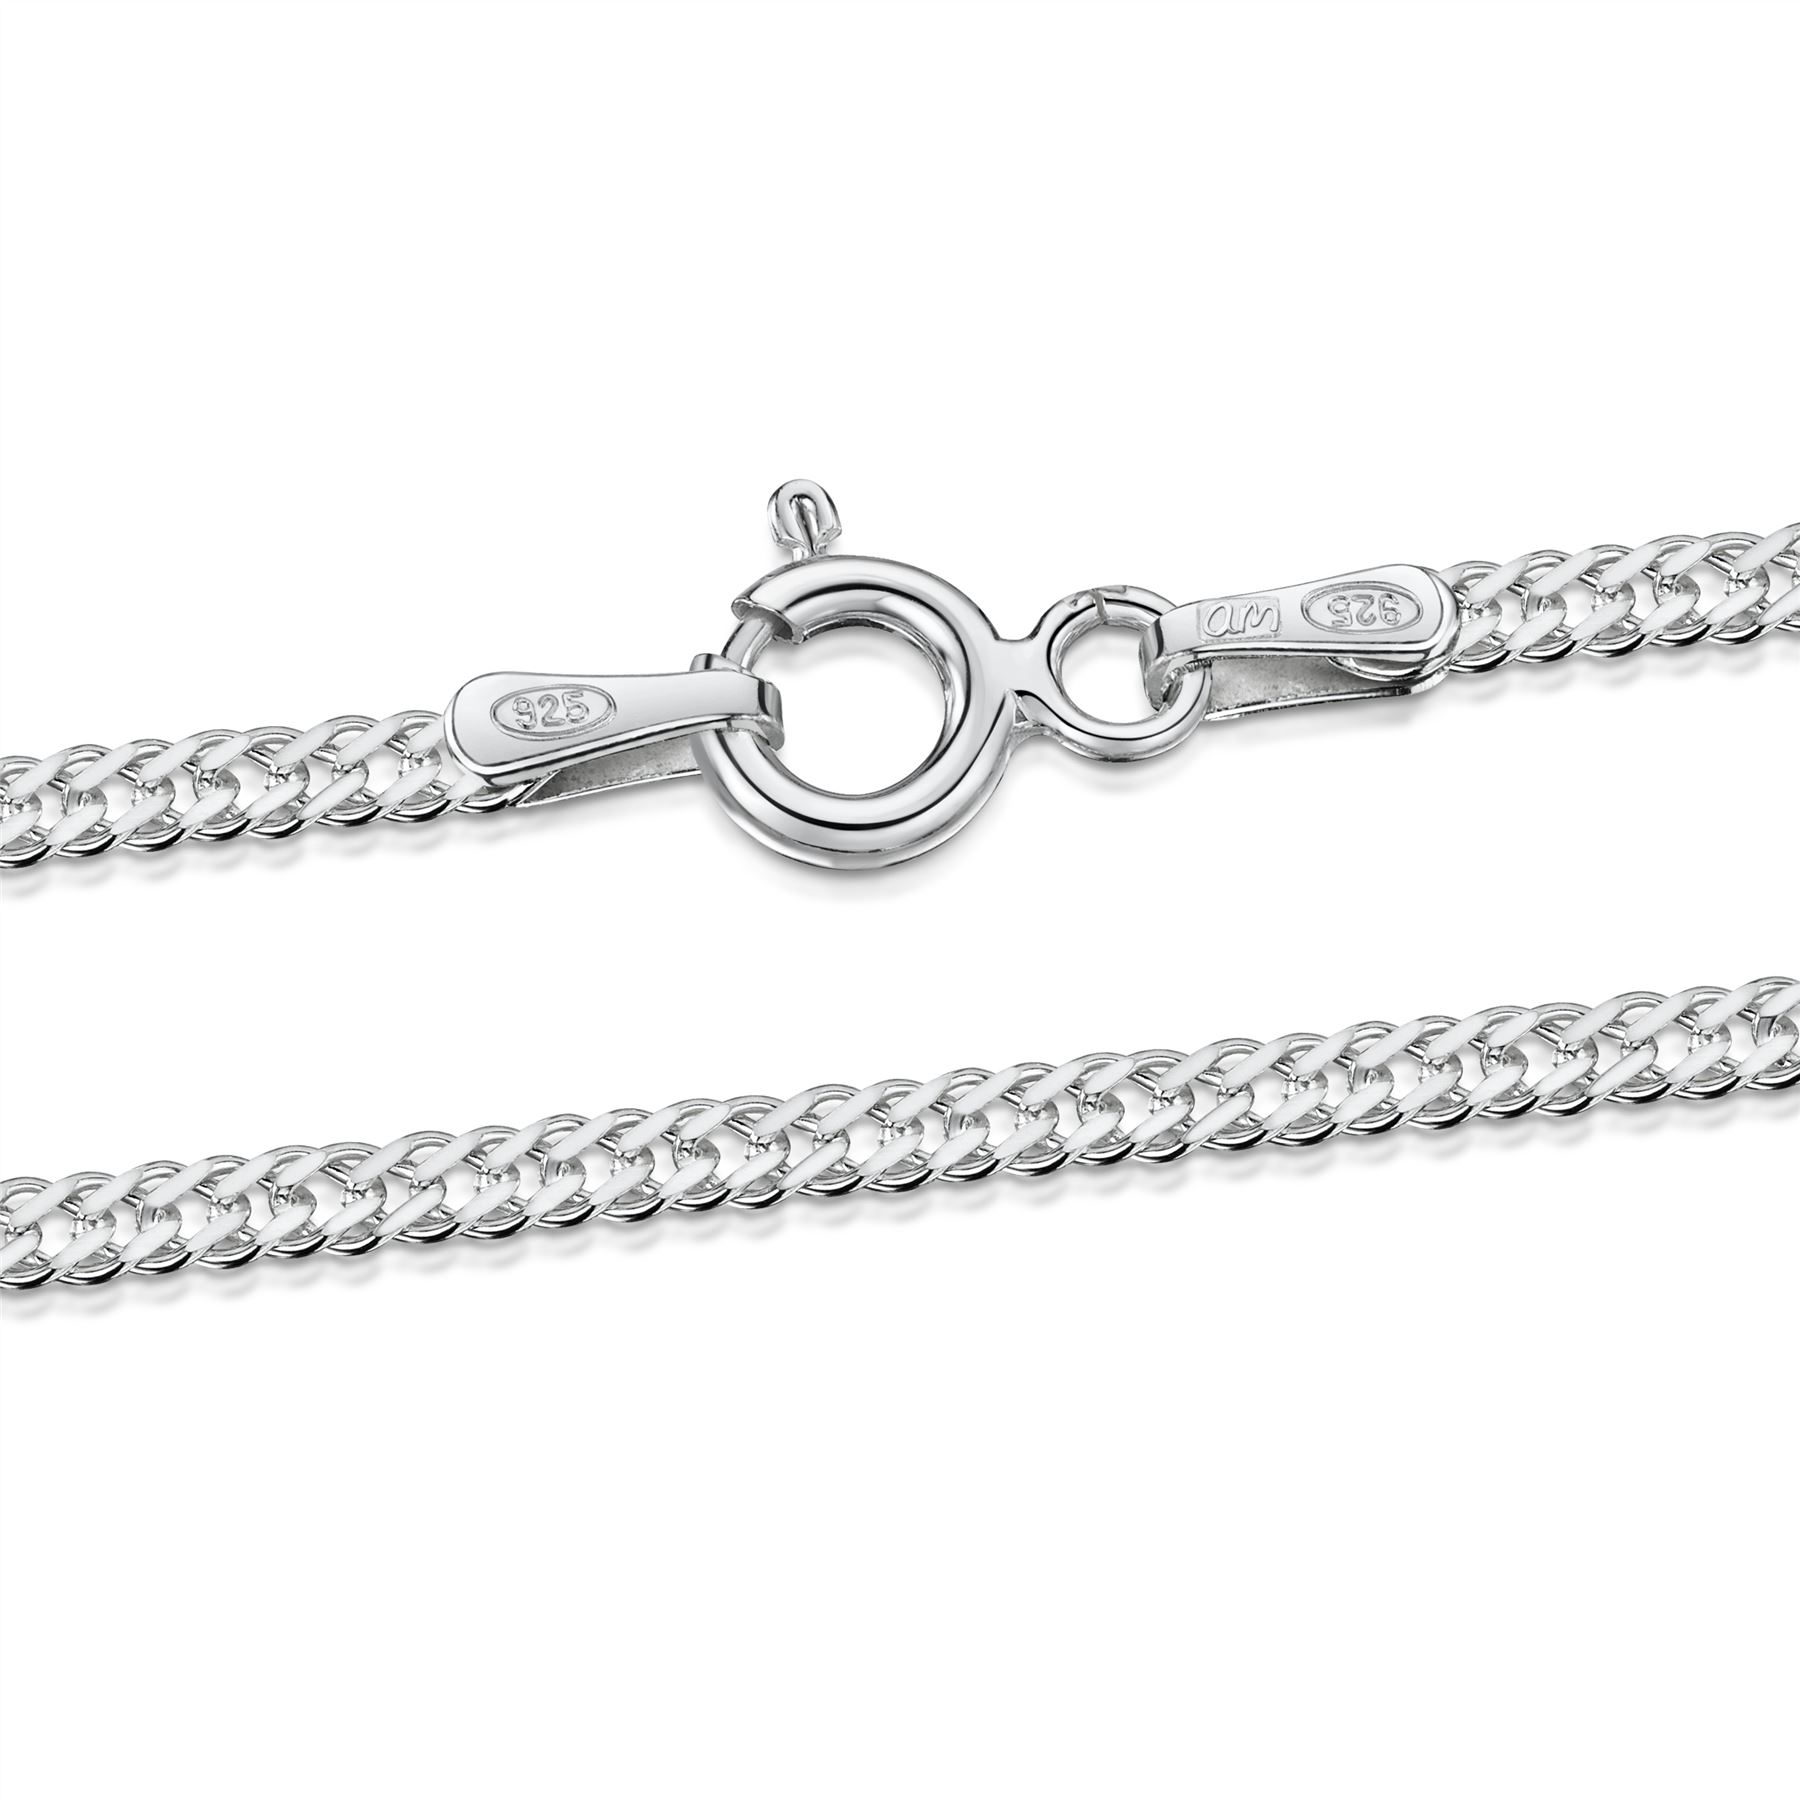 Amberta-Jewelry-Genuine-925-Sterling-Silver-Bracelet-Bangle-Chain-Made-in-Italy thumbnail 49